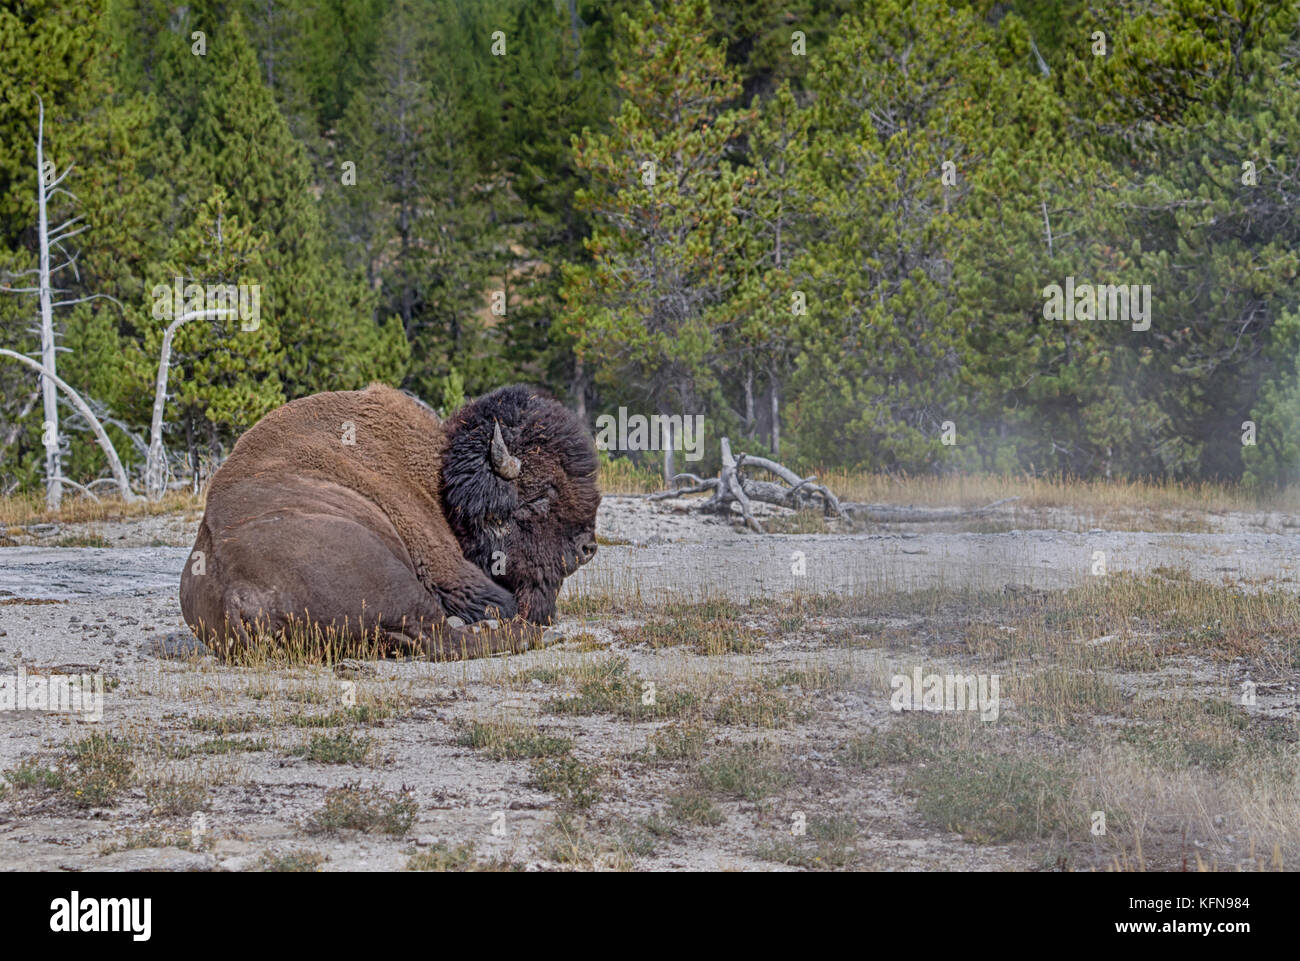 American bison (Bison bison) at Upper Geyser Basin is getting warm from hot earth surfice - Stock Image